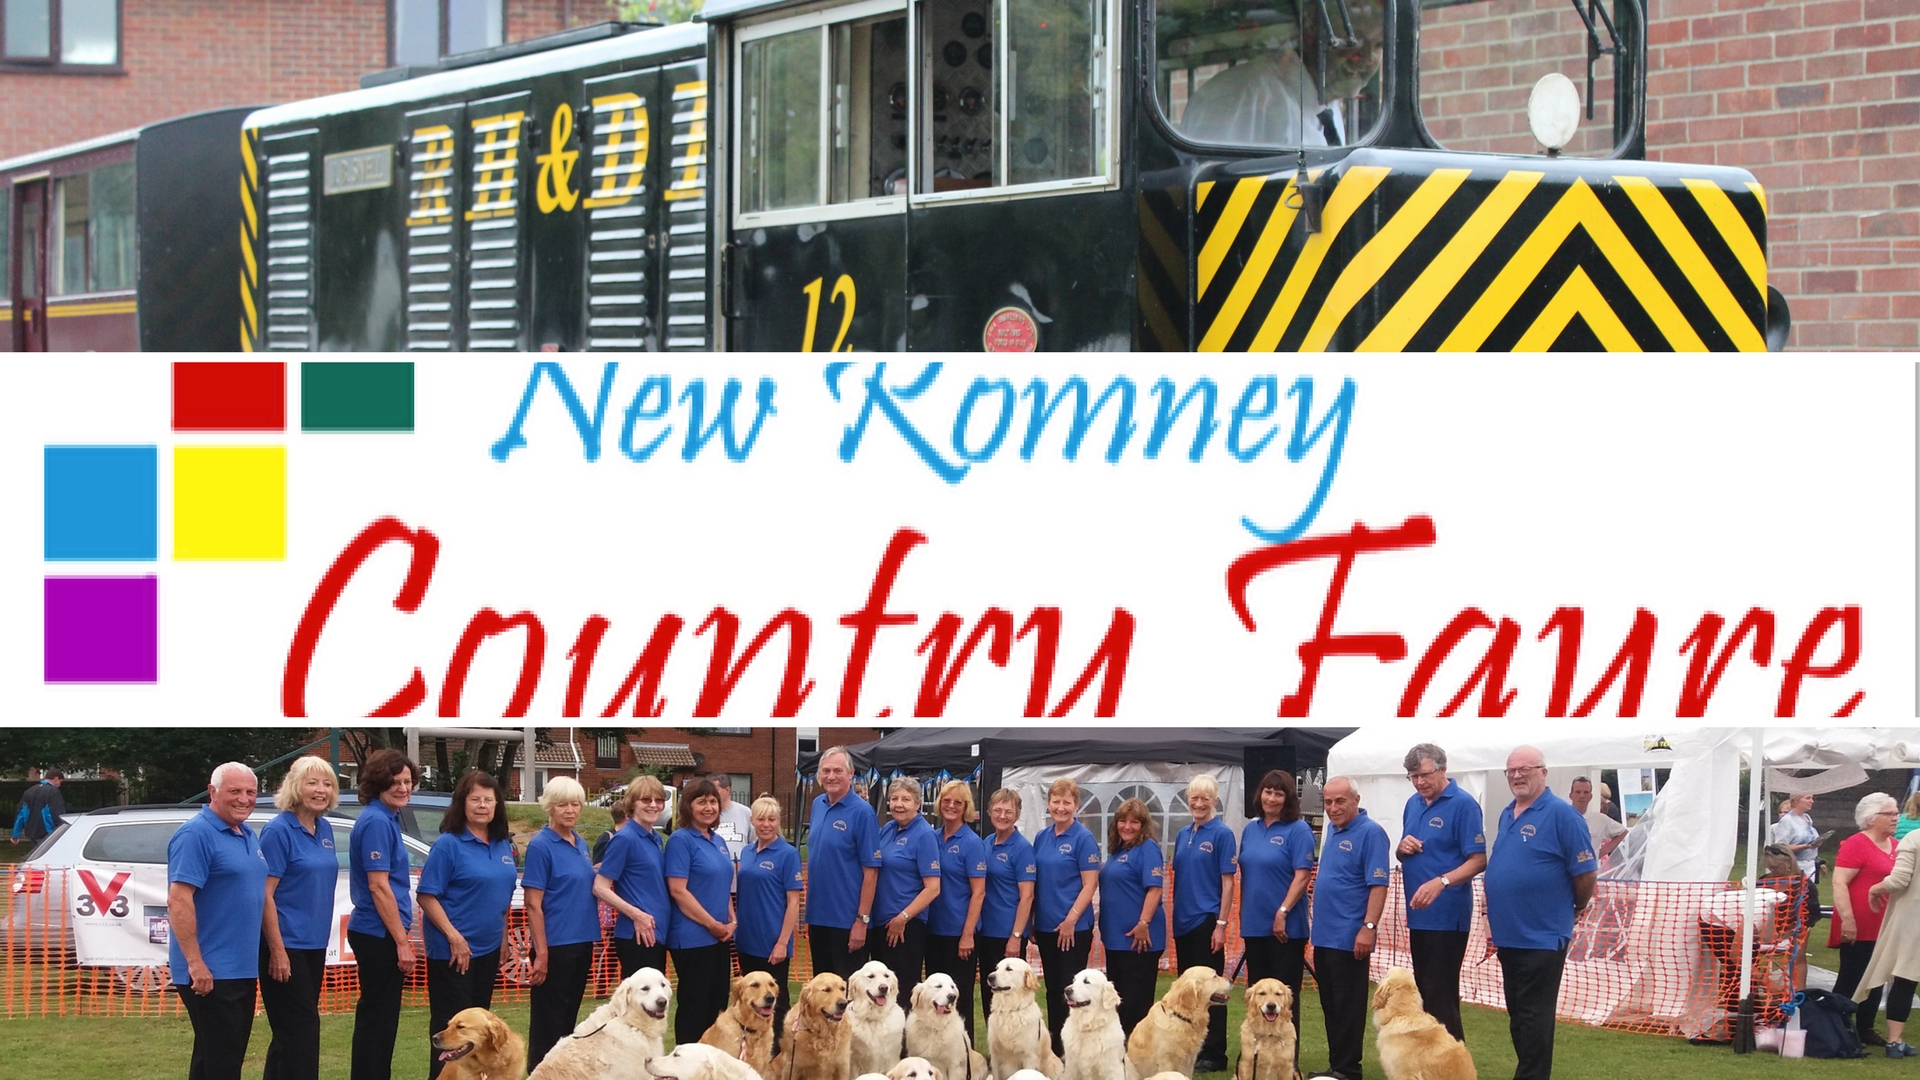 New Romney Country Fayre